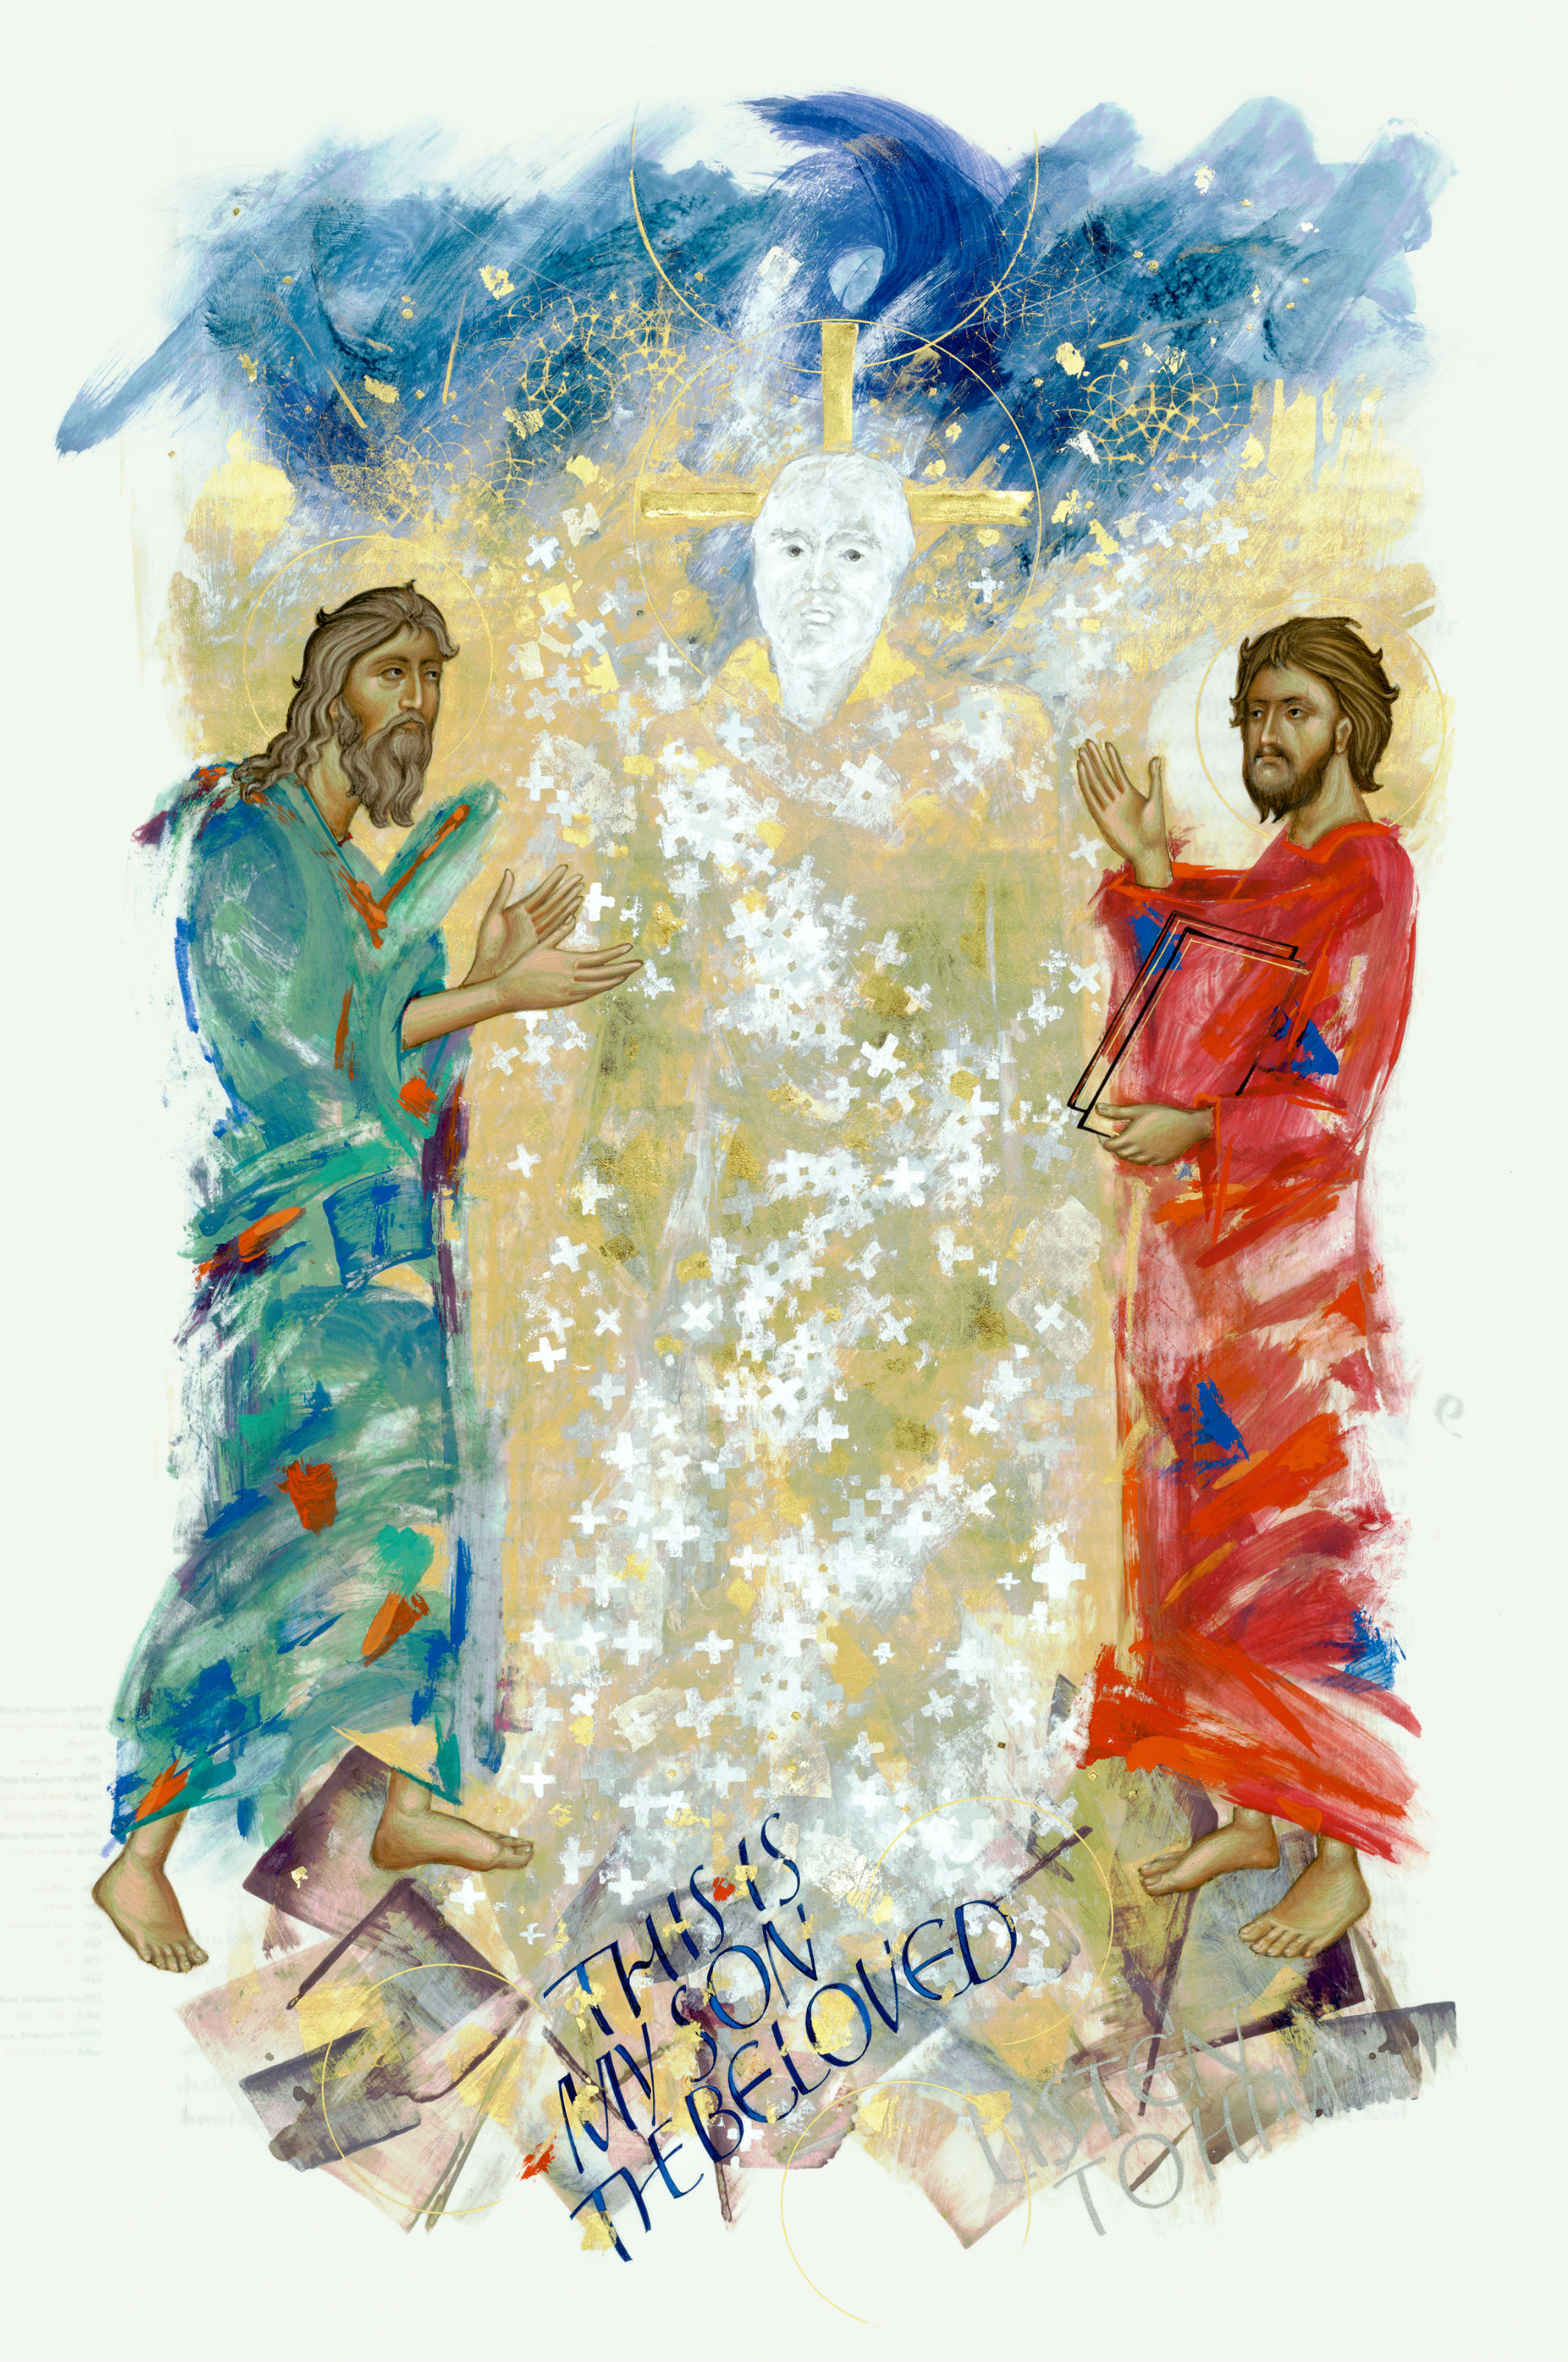 The Transfiguration, Donald Jackson in collaboration with Aidan Hart, 2002. The Saint John's Bible, Order of Saint Benedict, Collegeville, Minnesota USA. Used by permission. All rights reserved.